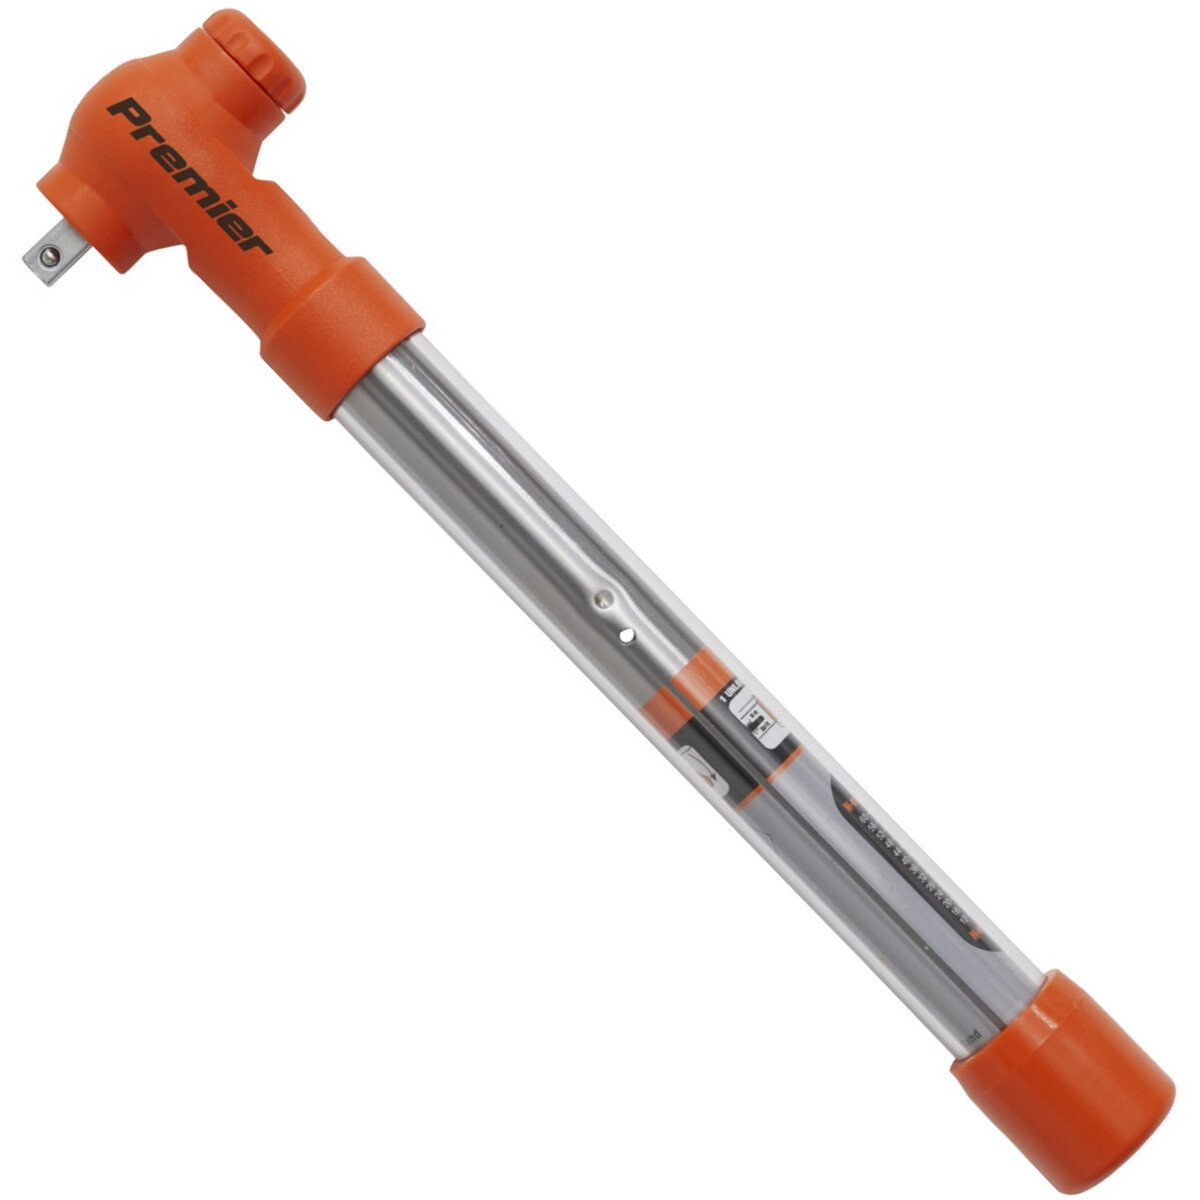 "Sealey STW803 Torque Wrench Insulated 3/8"" Drive 12-60Nm"